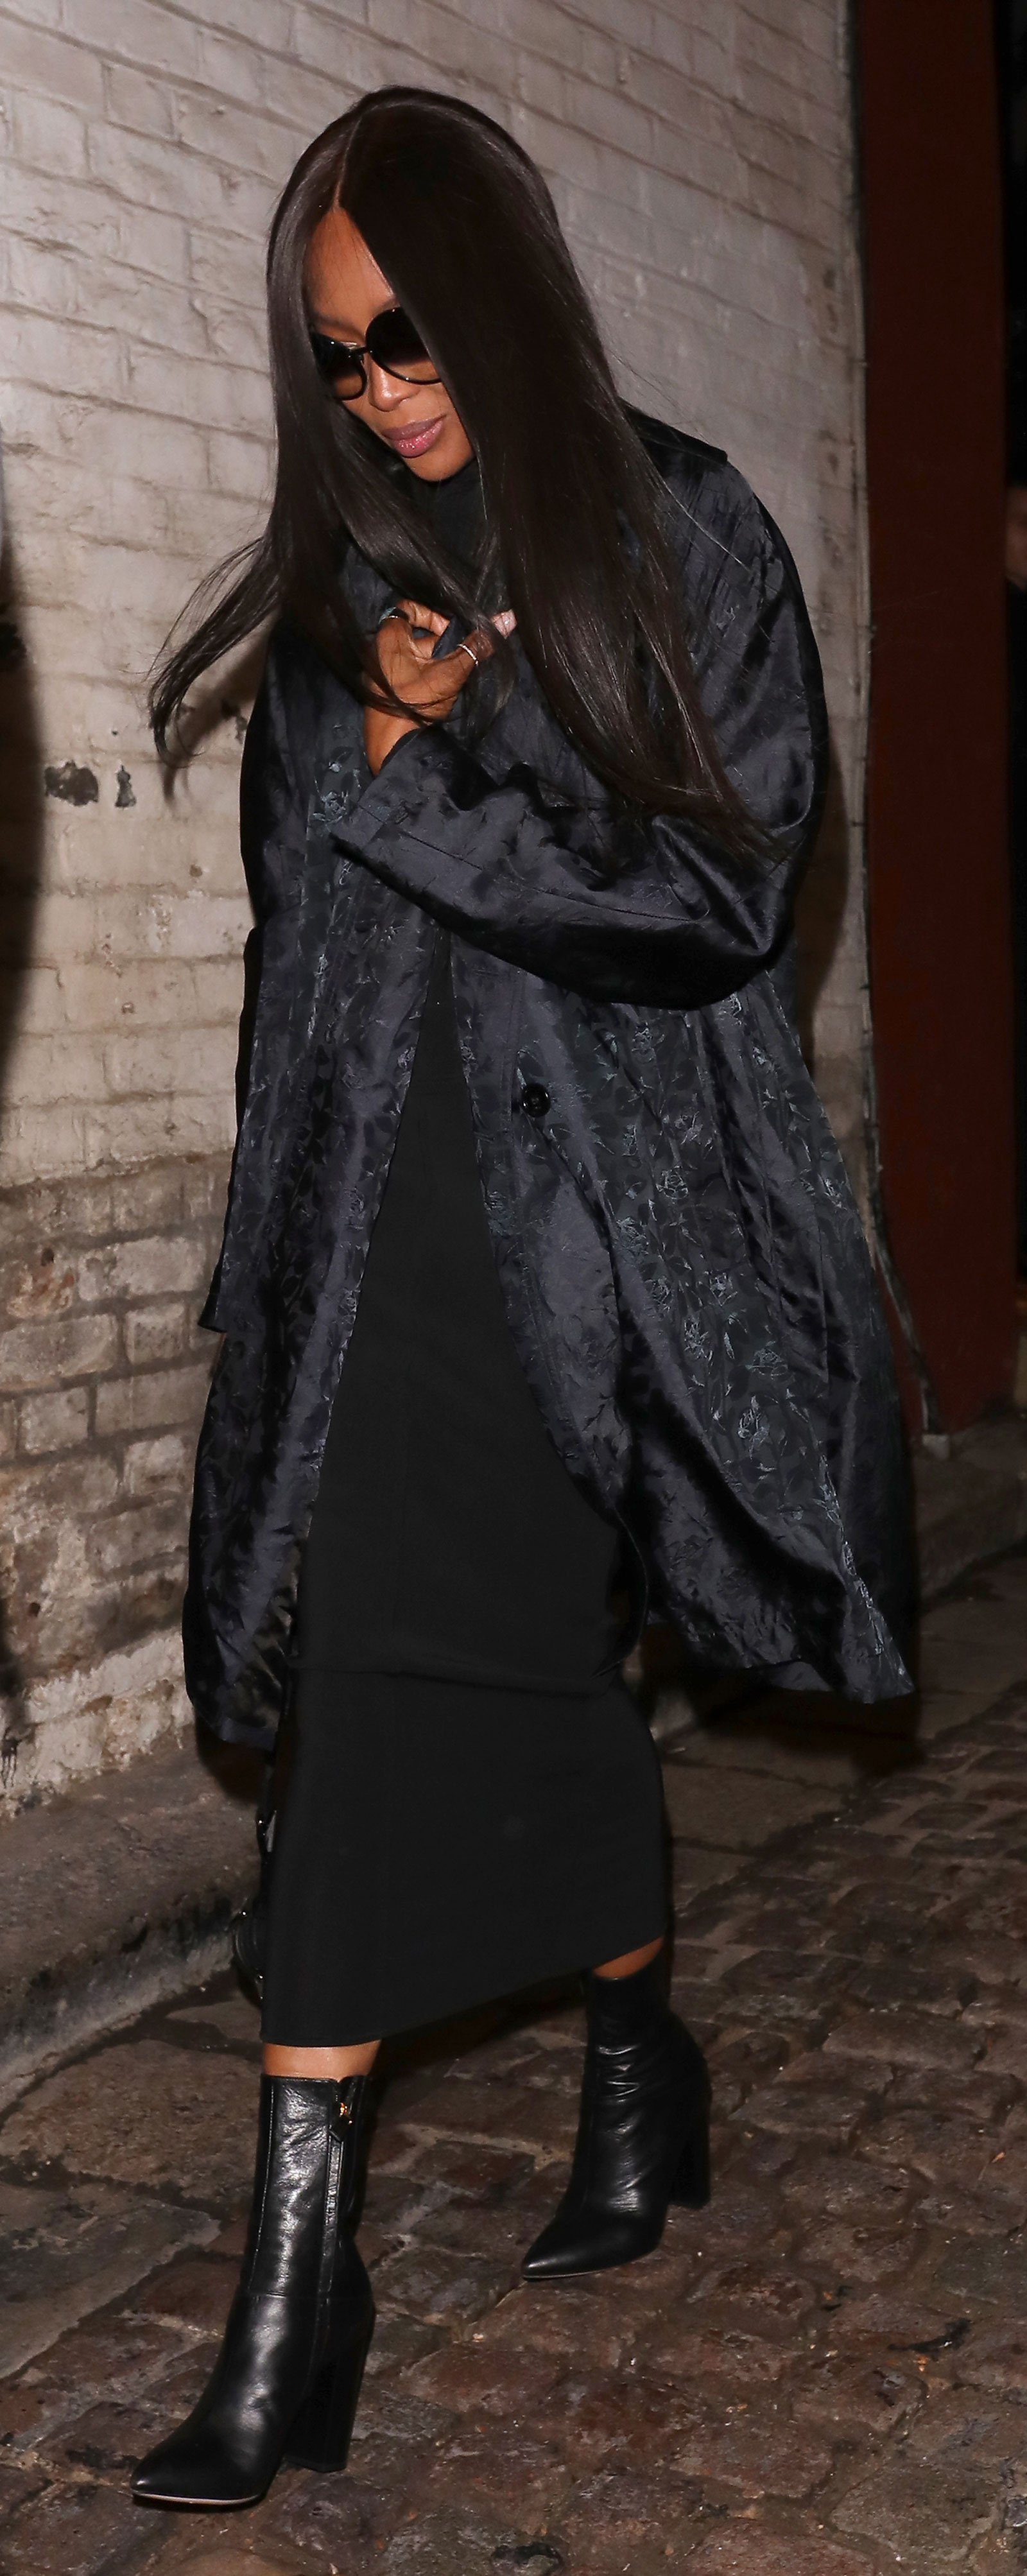 Naomi Campbell Black Coat and Boots